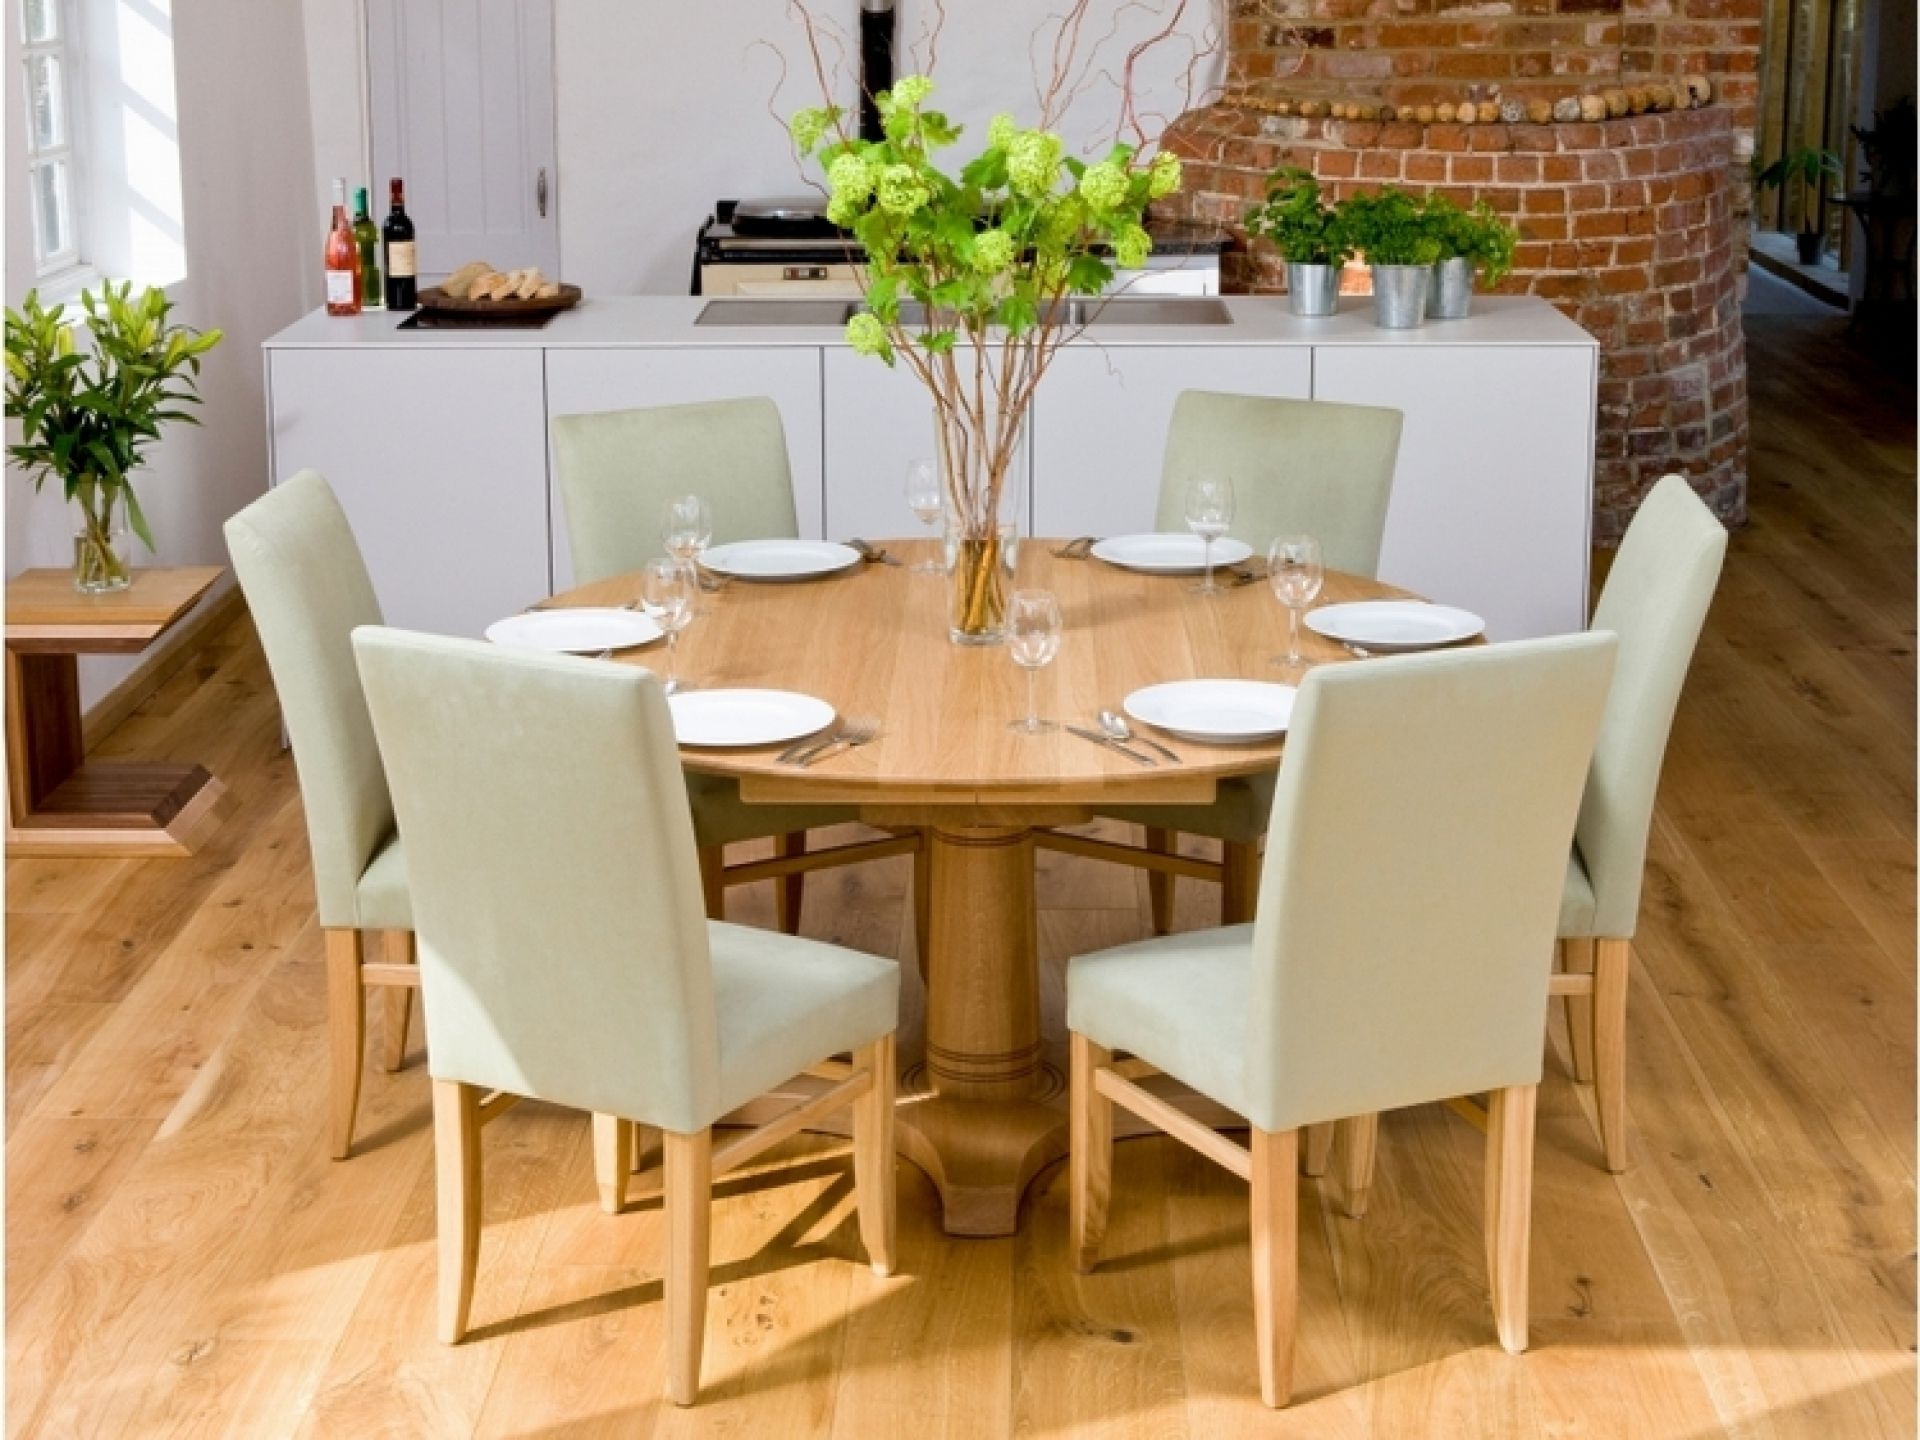 Place Grey Lather Chairs And Round Dining Table For 6 In Minimalist Room On Laminate